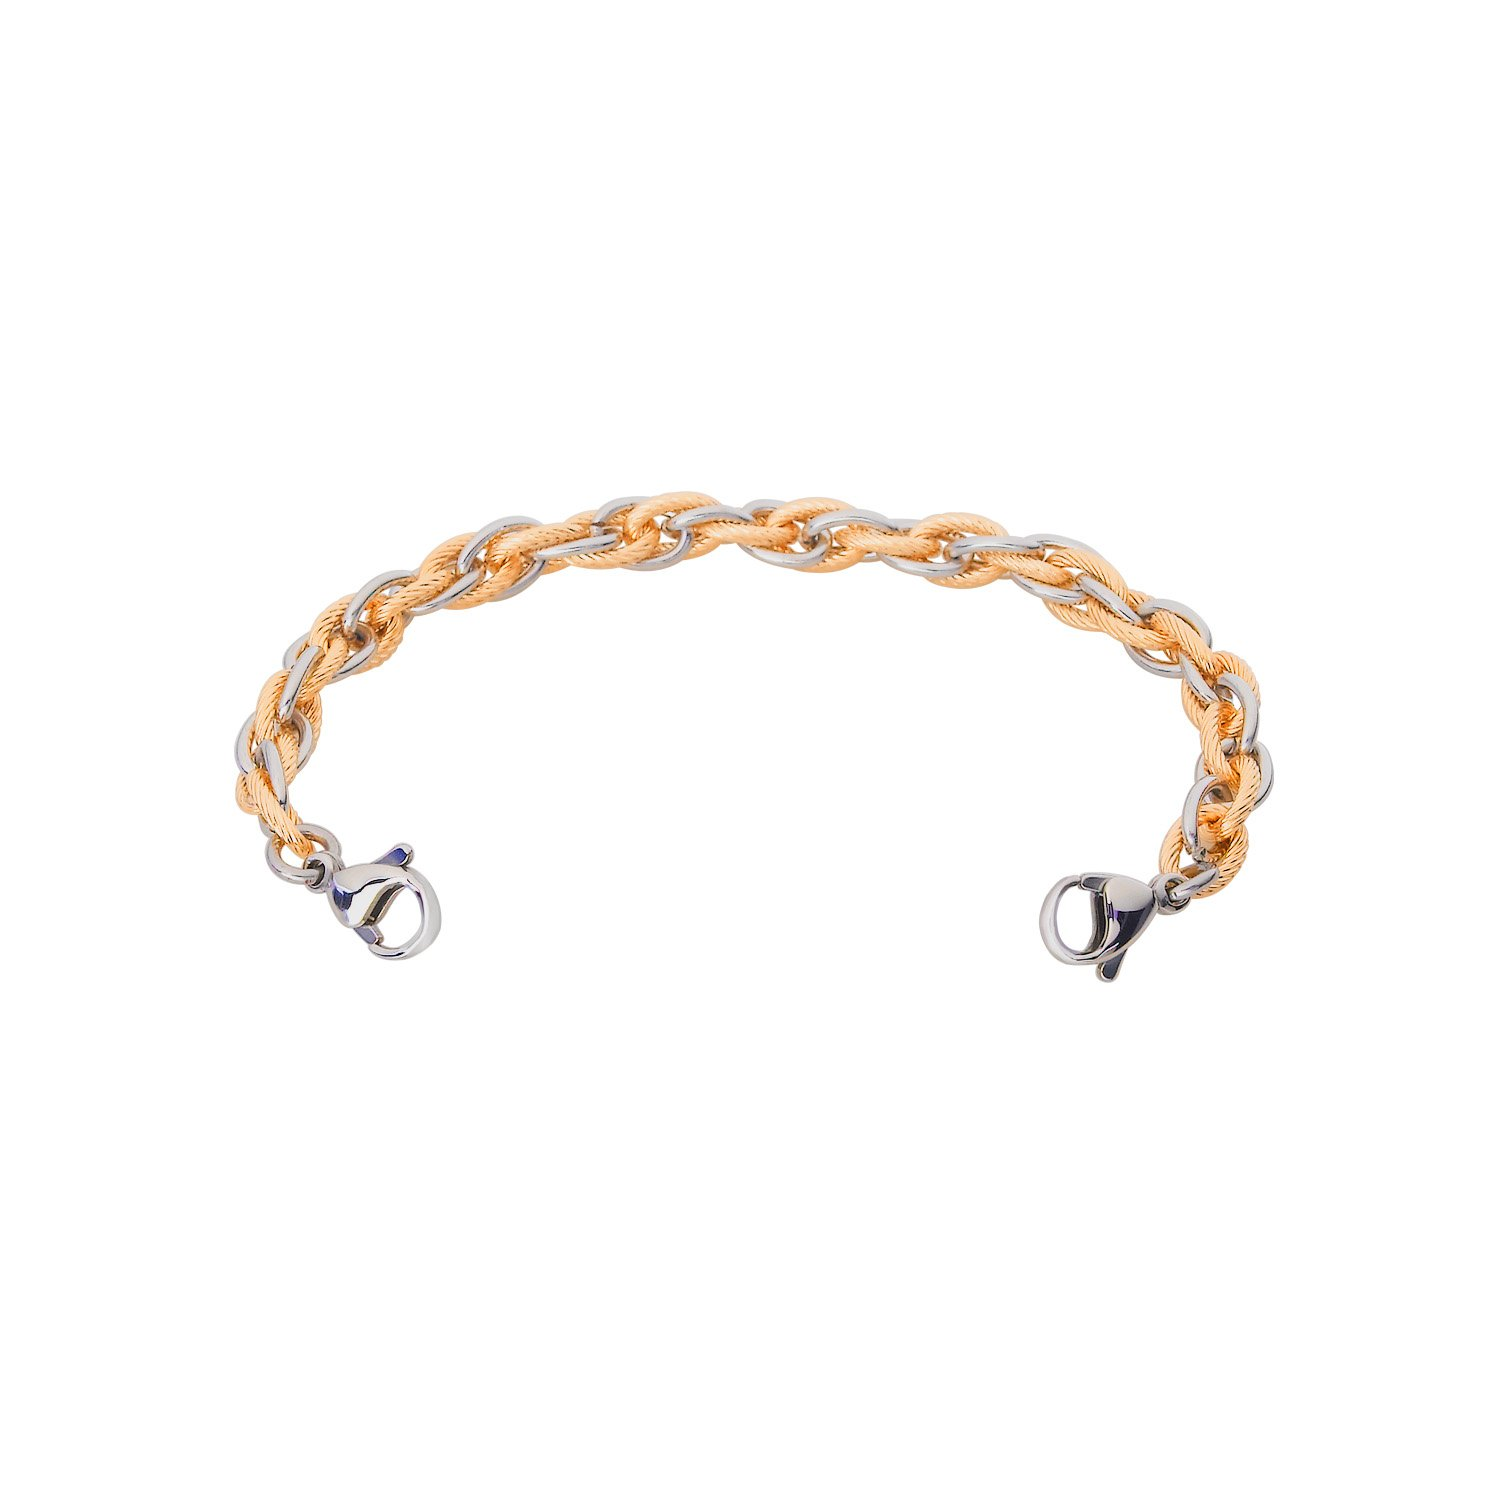 Divoti Inter-Mesh Gold & Silver Medical Alert Replacement Bracelet for Women - 5.5''